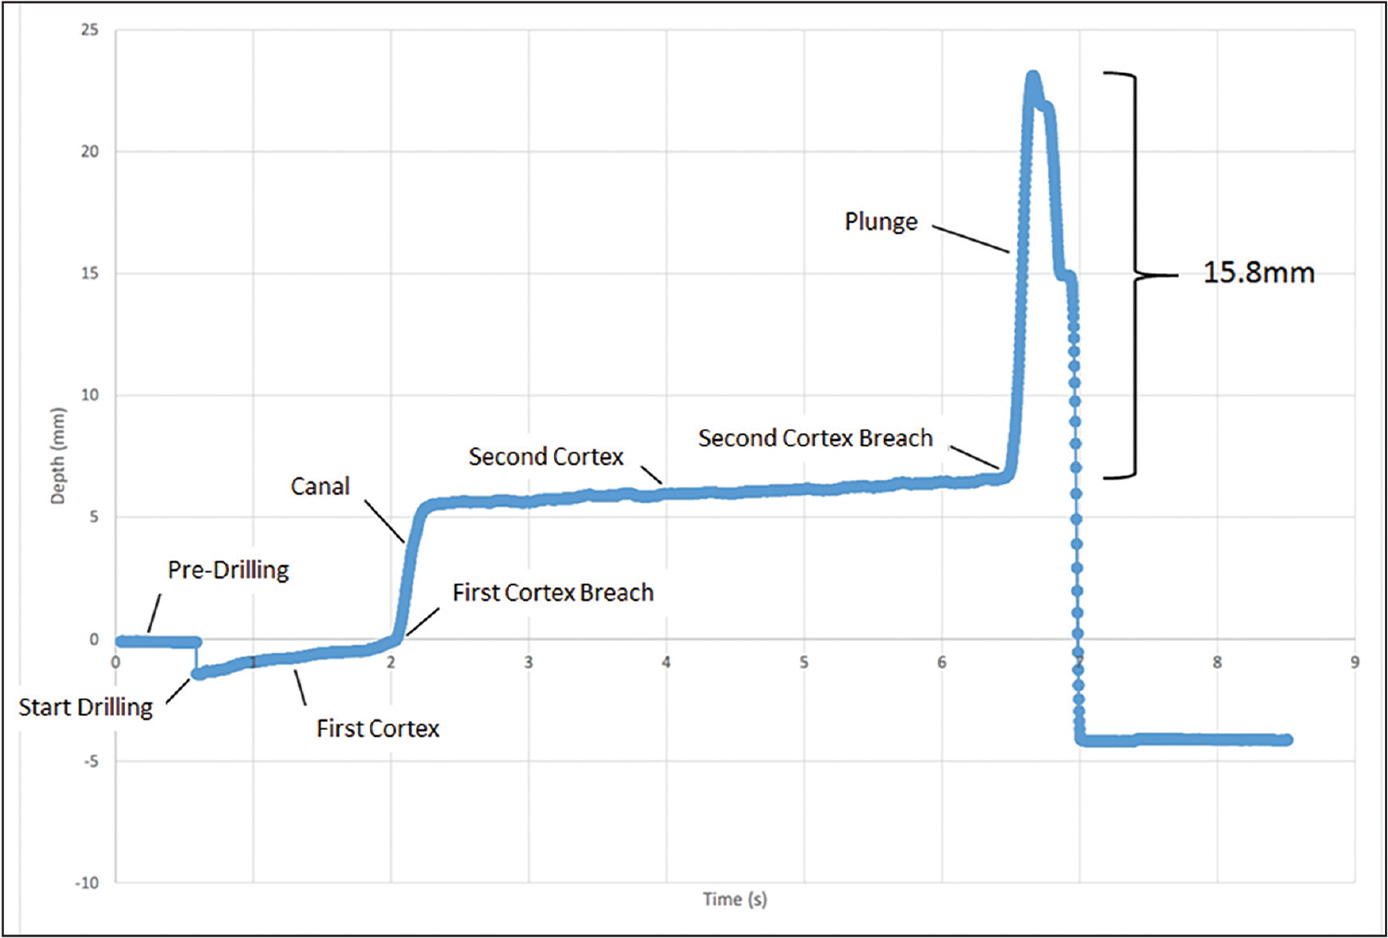 Graphical view of the data for the drill hole with the largest plunge, which was 15.8 mm (approximately 1.6 cm). The relevant stages of drilling are labeled.